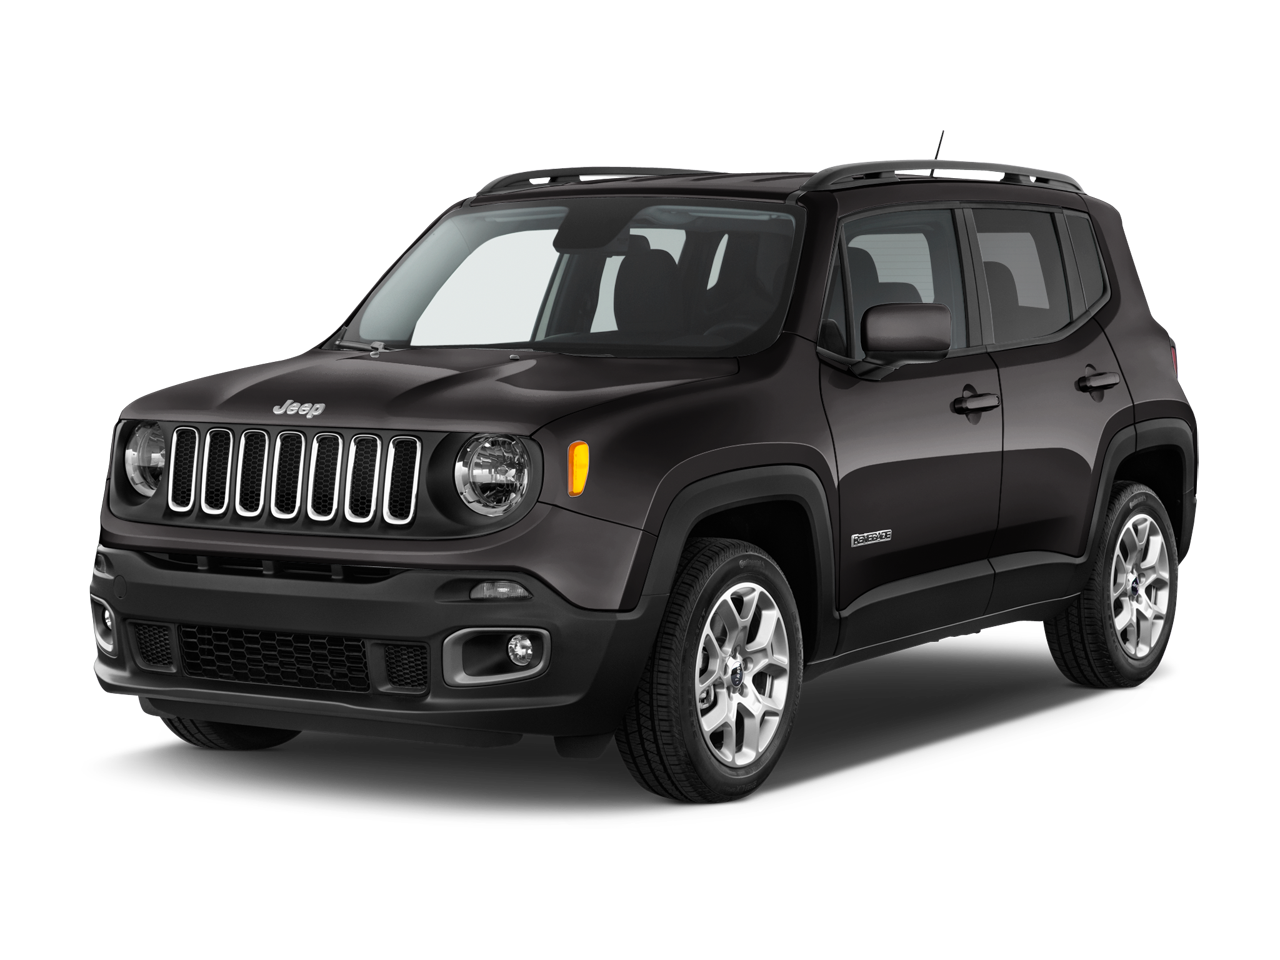 jeep renegade edmunds 2017 2018 cars reviews. Black Bedroom Furniture Sets. Home Design Ideas